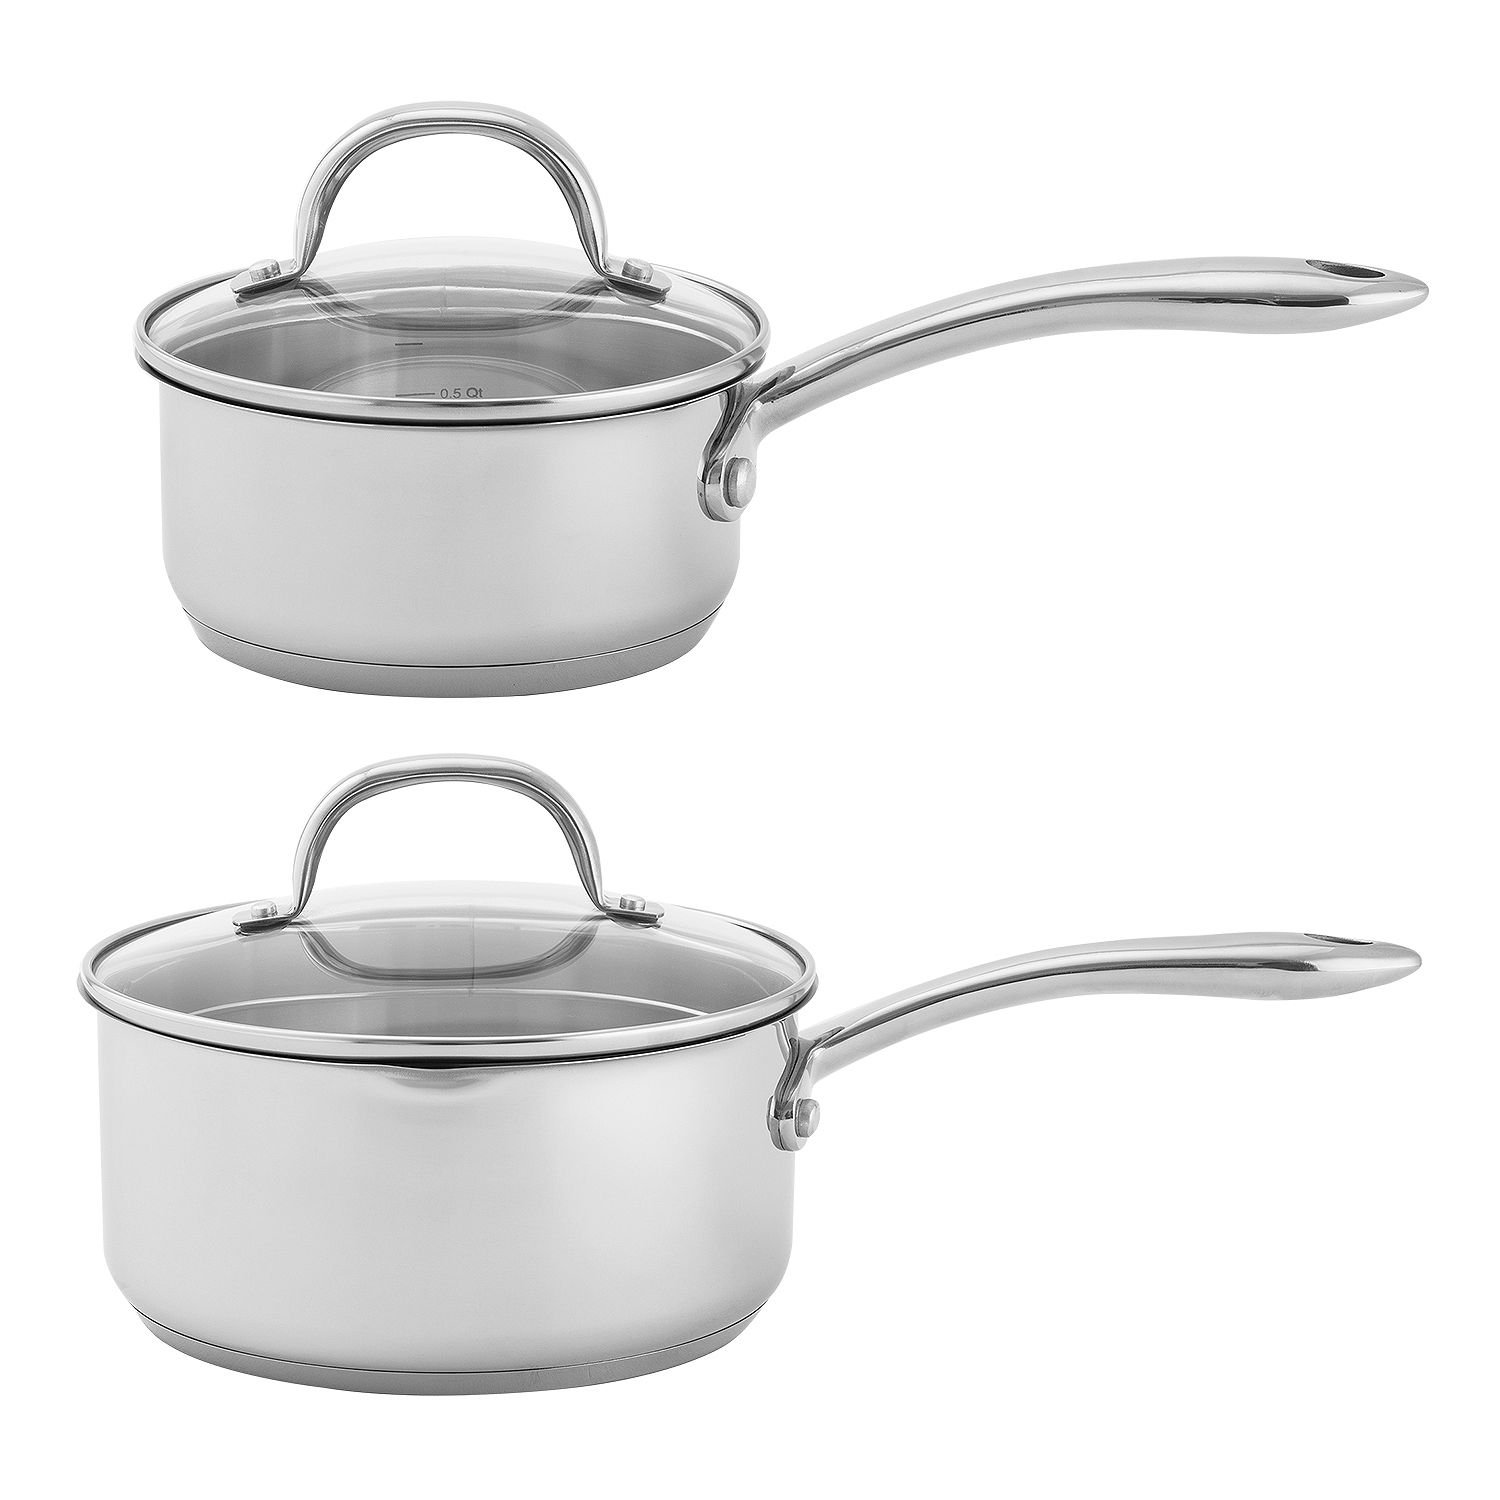 Amazon.com: Wolfgang Puck Stainless Steel 18 PC cookware Set ...